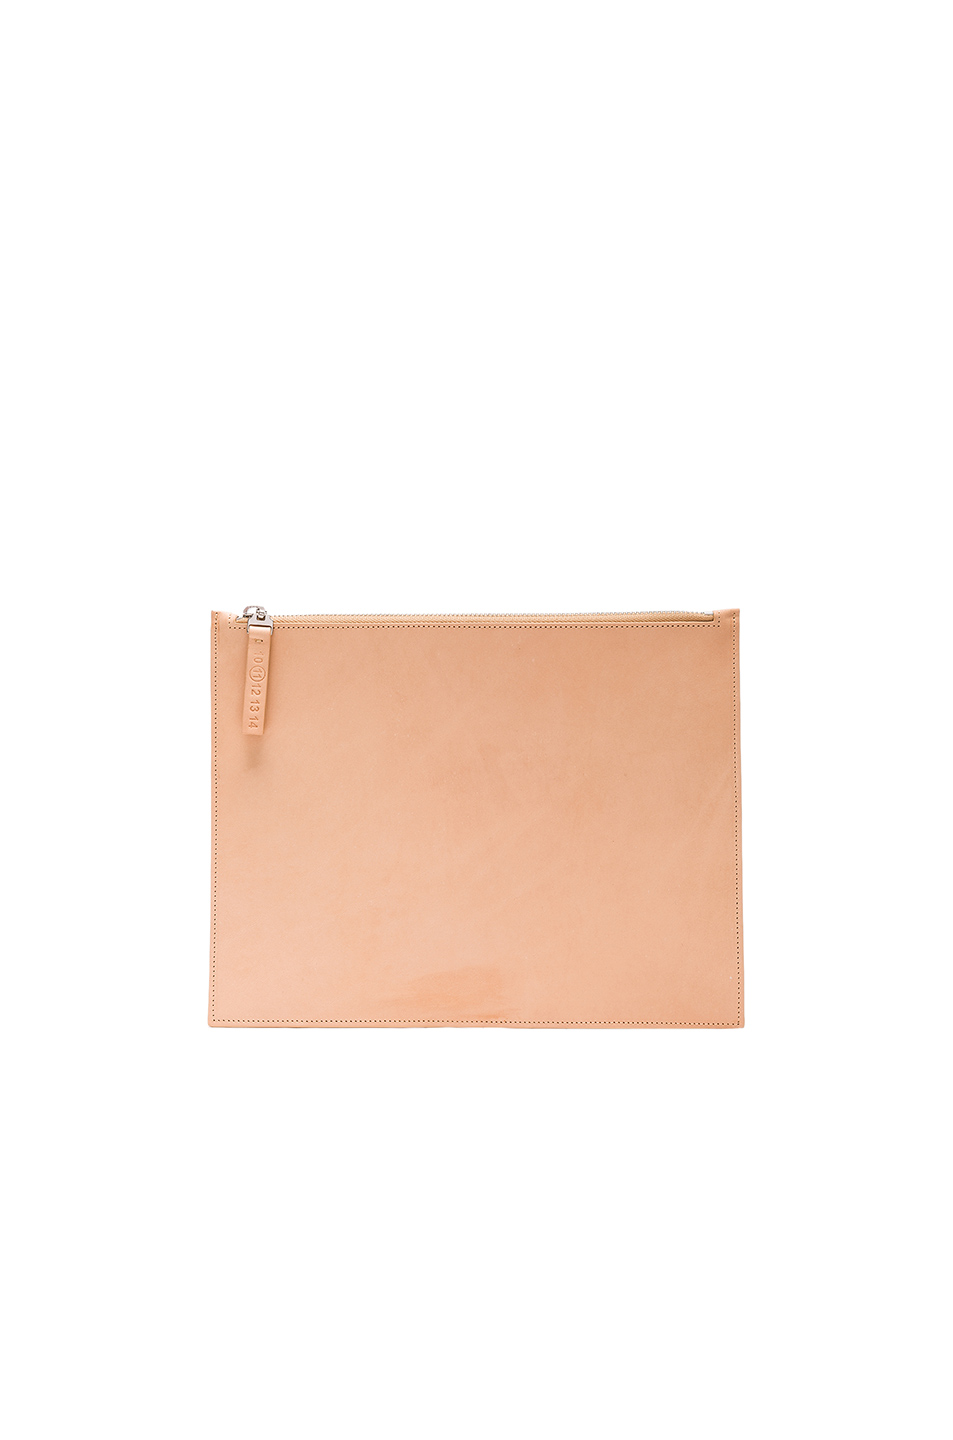 Maison Margiela Leather Pouch in Neutrals